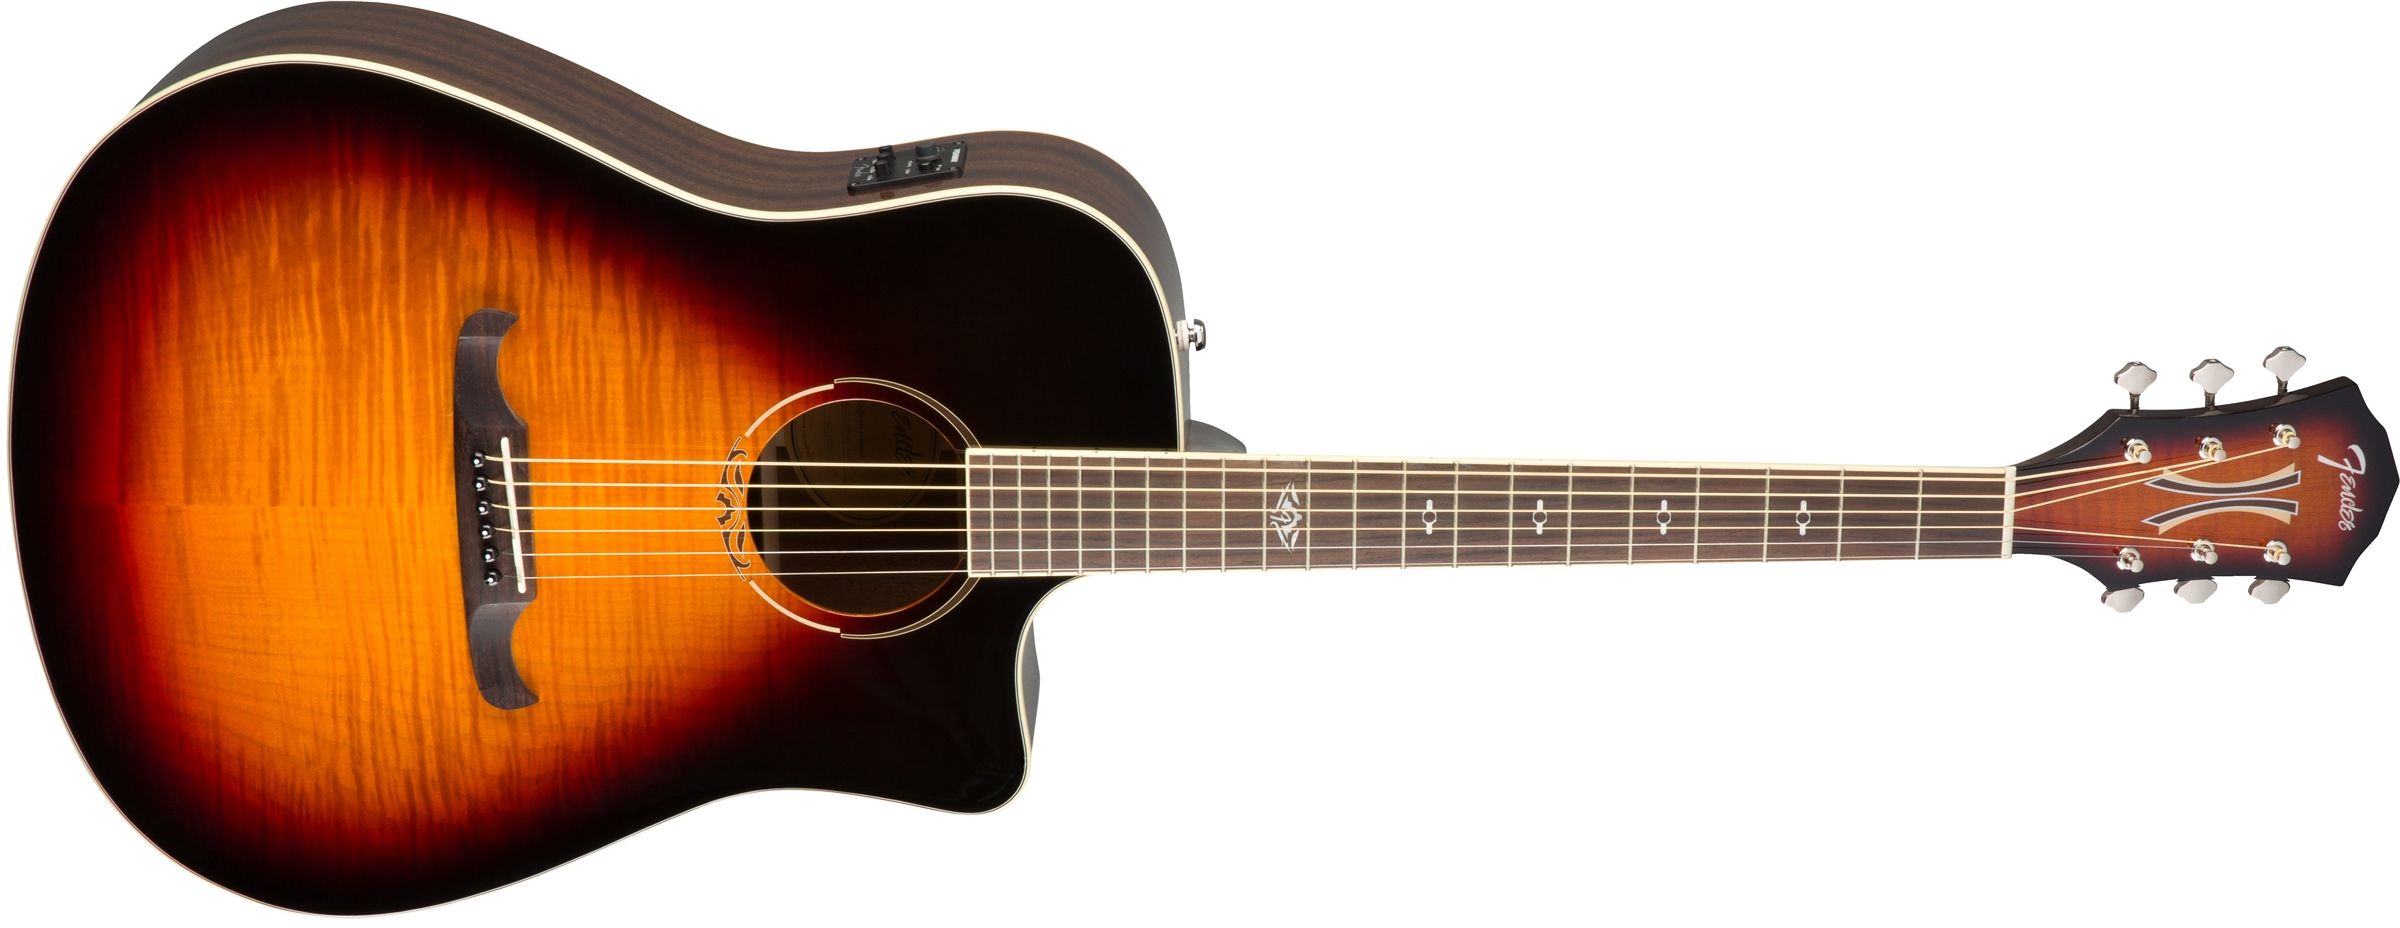 Fender acoustic guitar serial number dating smith